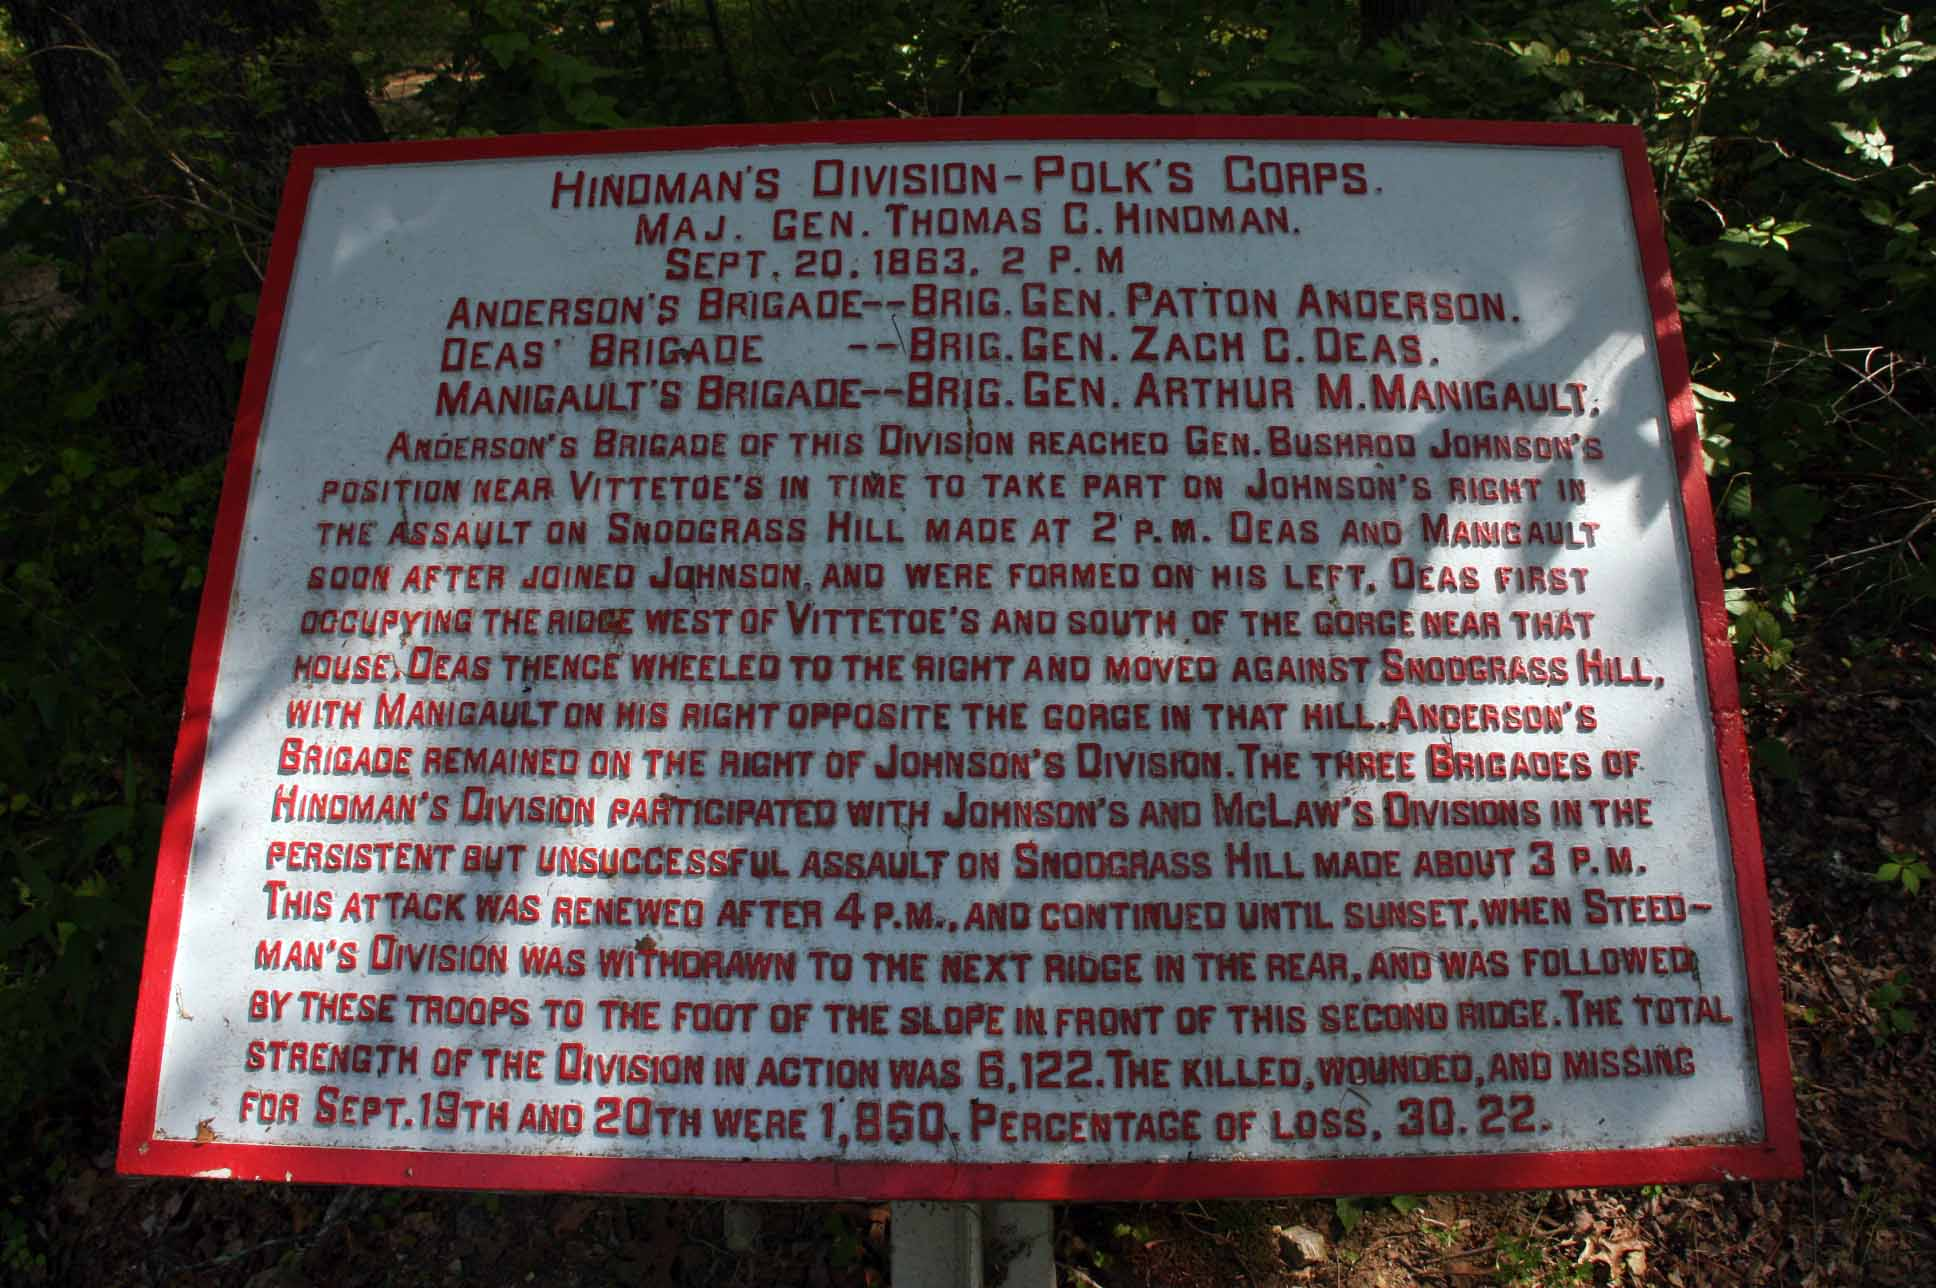 Hindman's Division Tablet, click photo to enlarge.